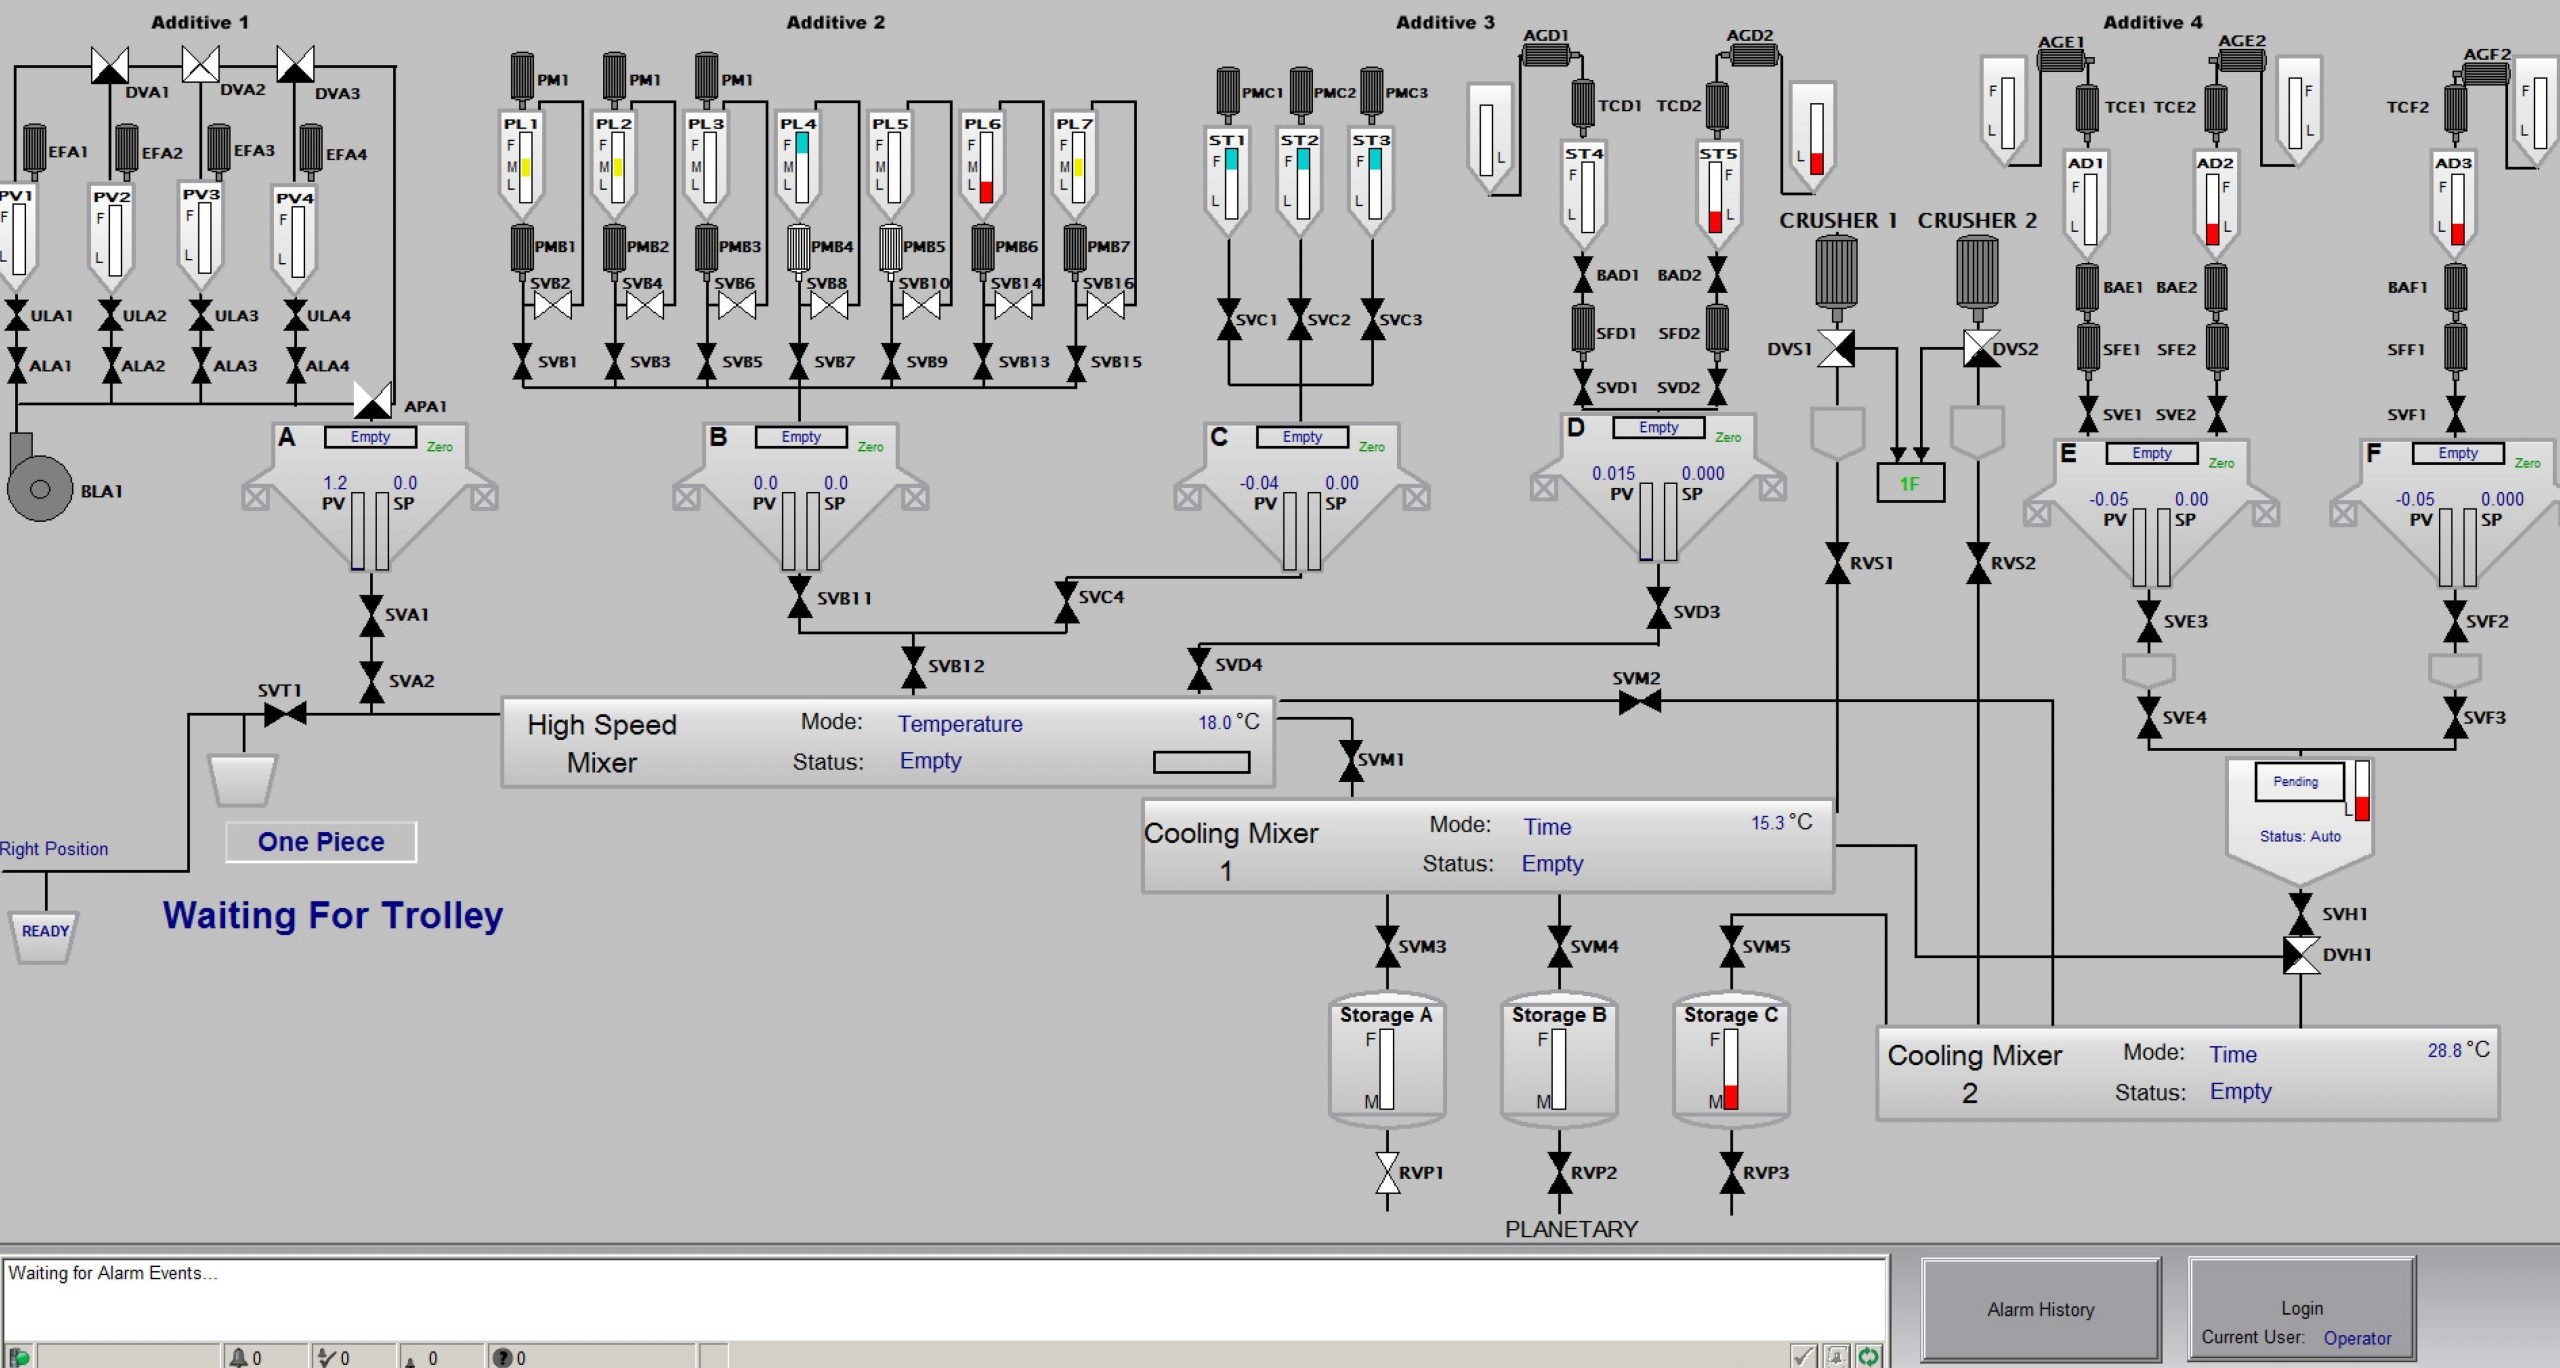 SCADA system manufacturing facility overview